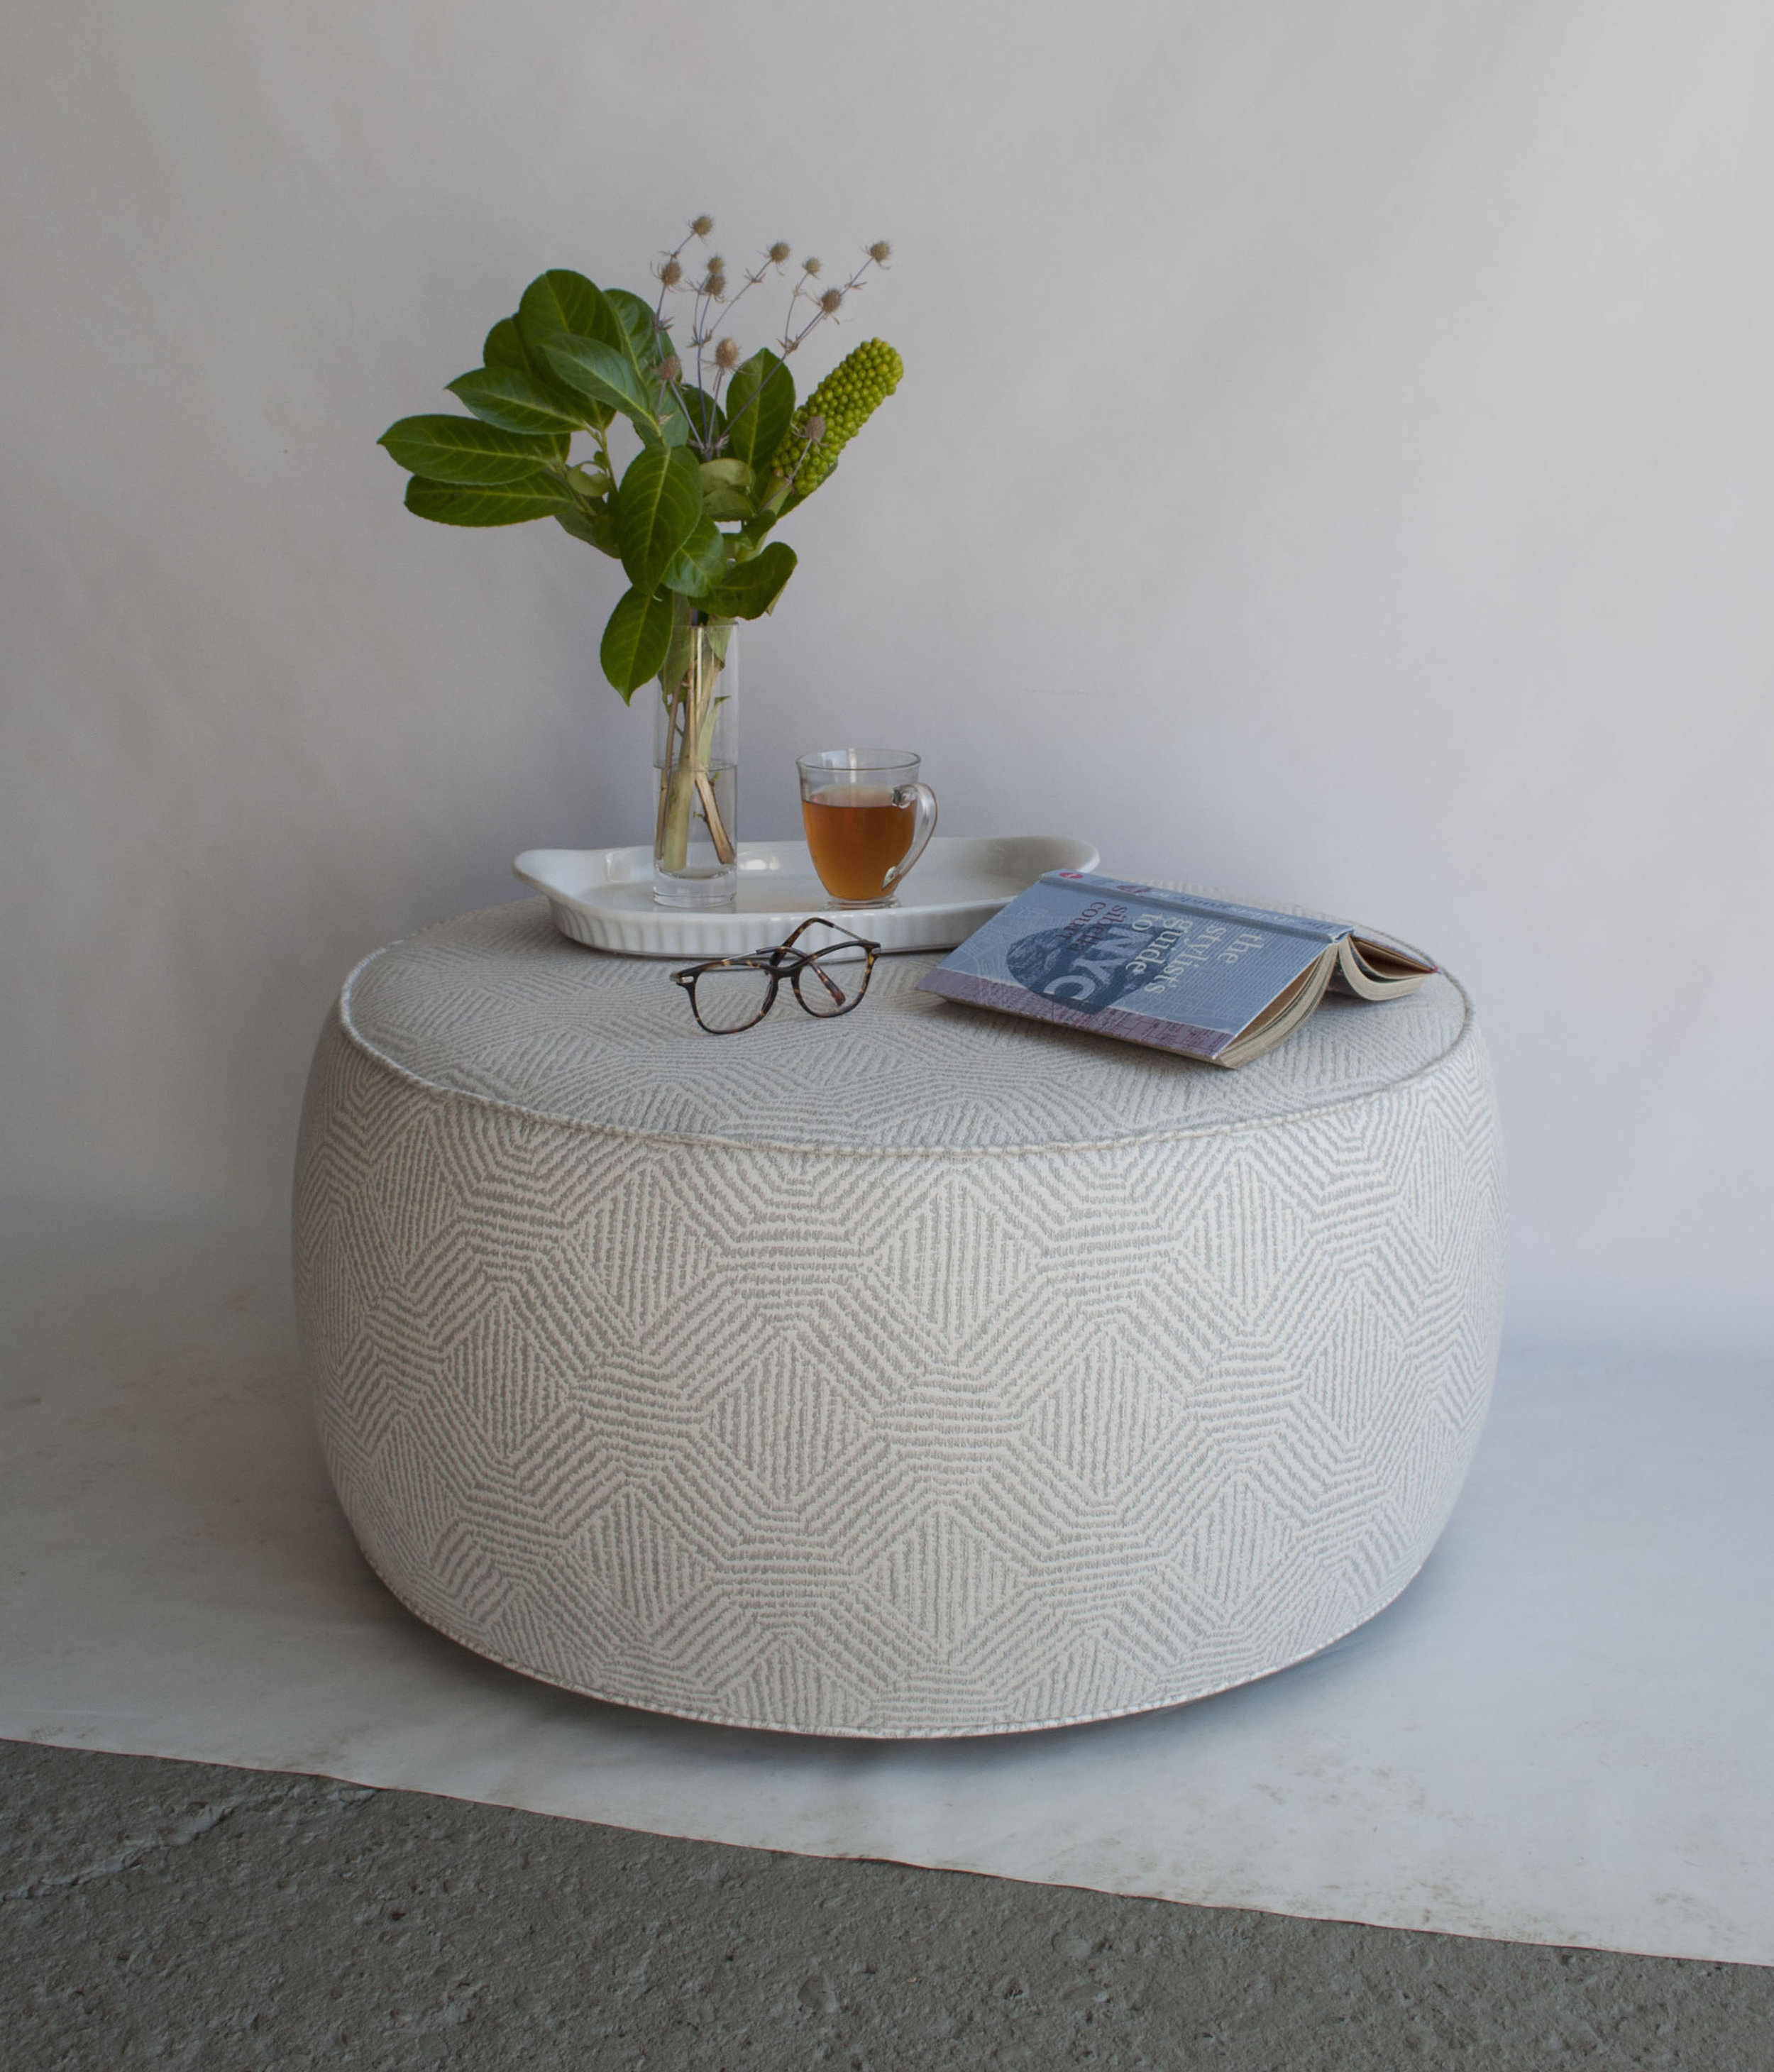 Bespoke round ottoman with piping trim designed by Amanda Evans Interiors